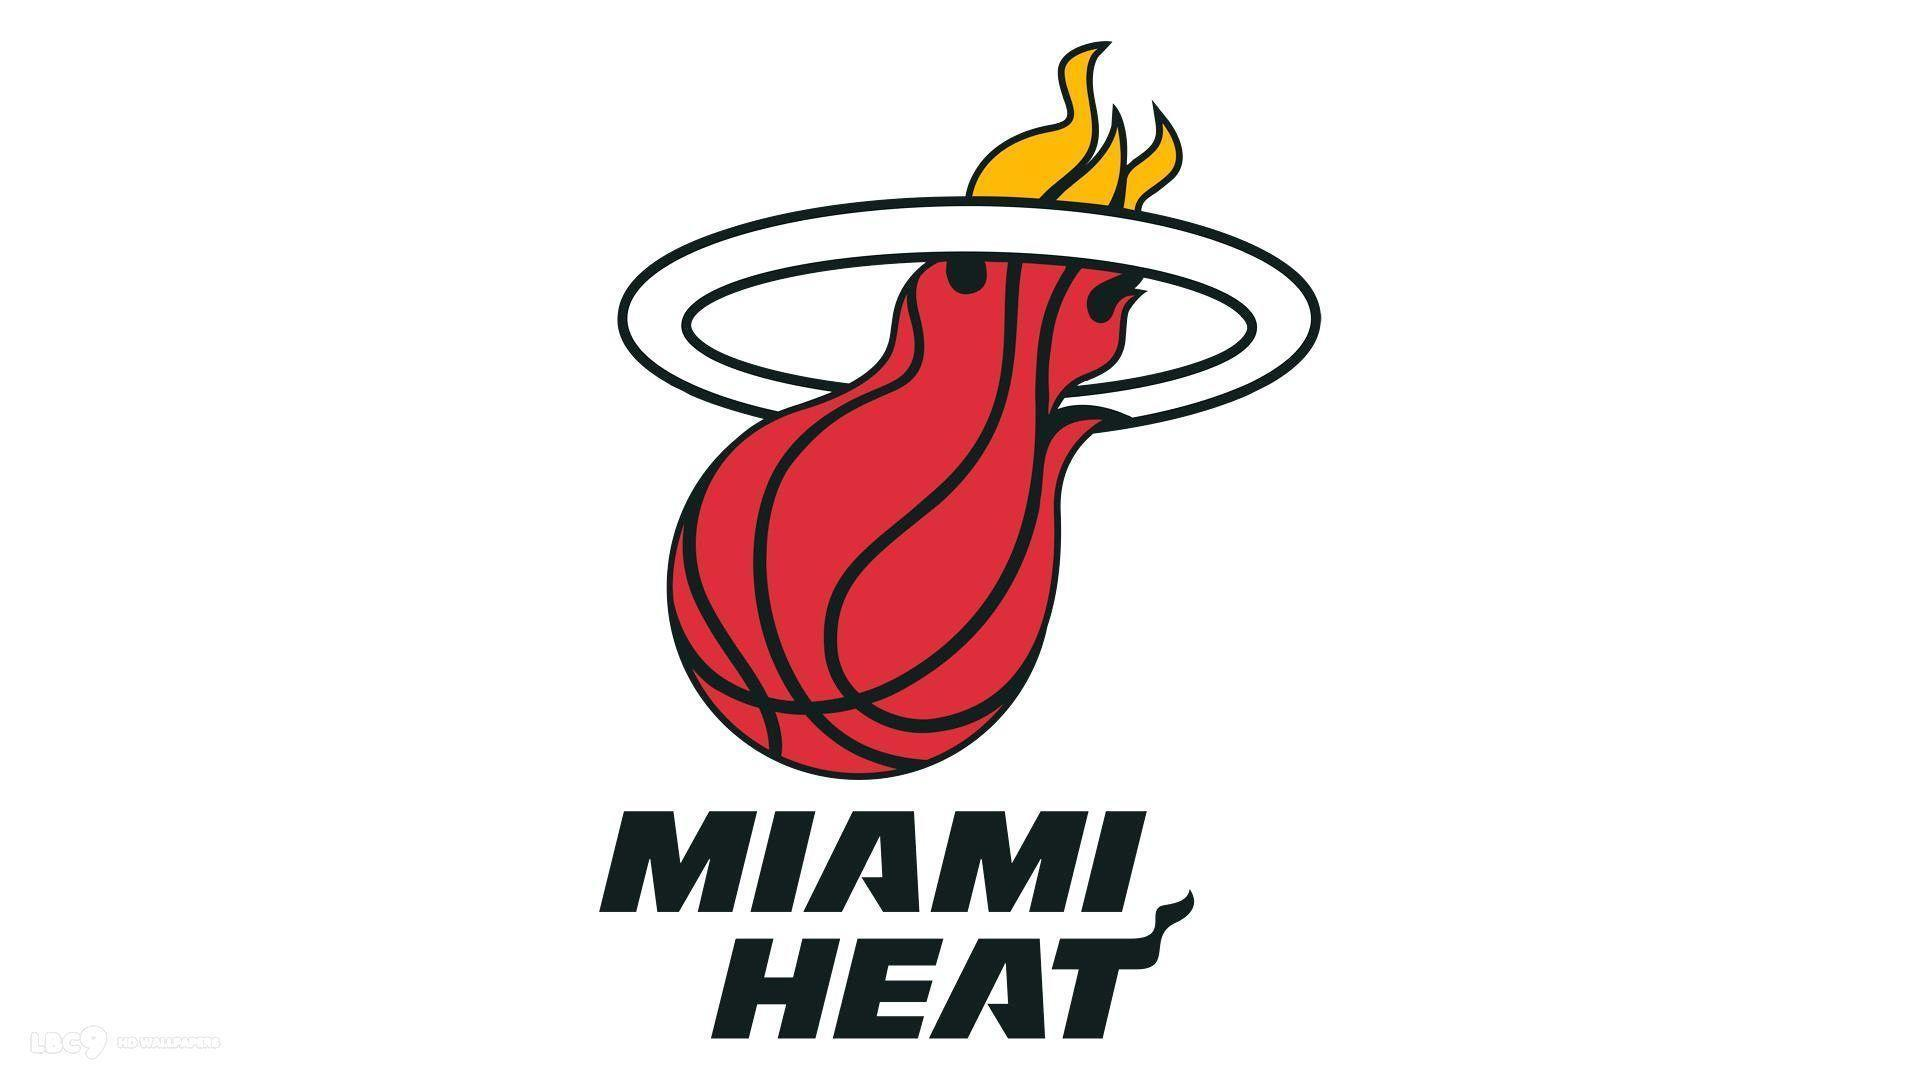 Miami Heat HD Wallpapers 2015 - Wallpaper Cave